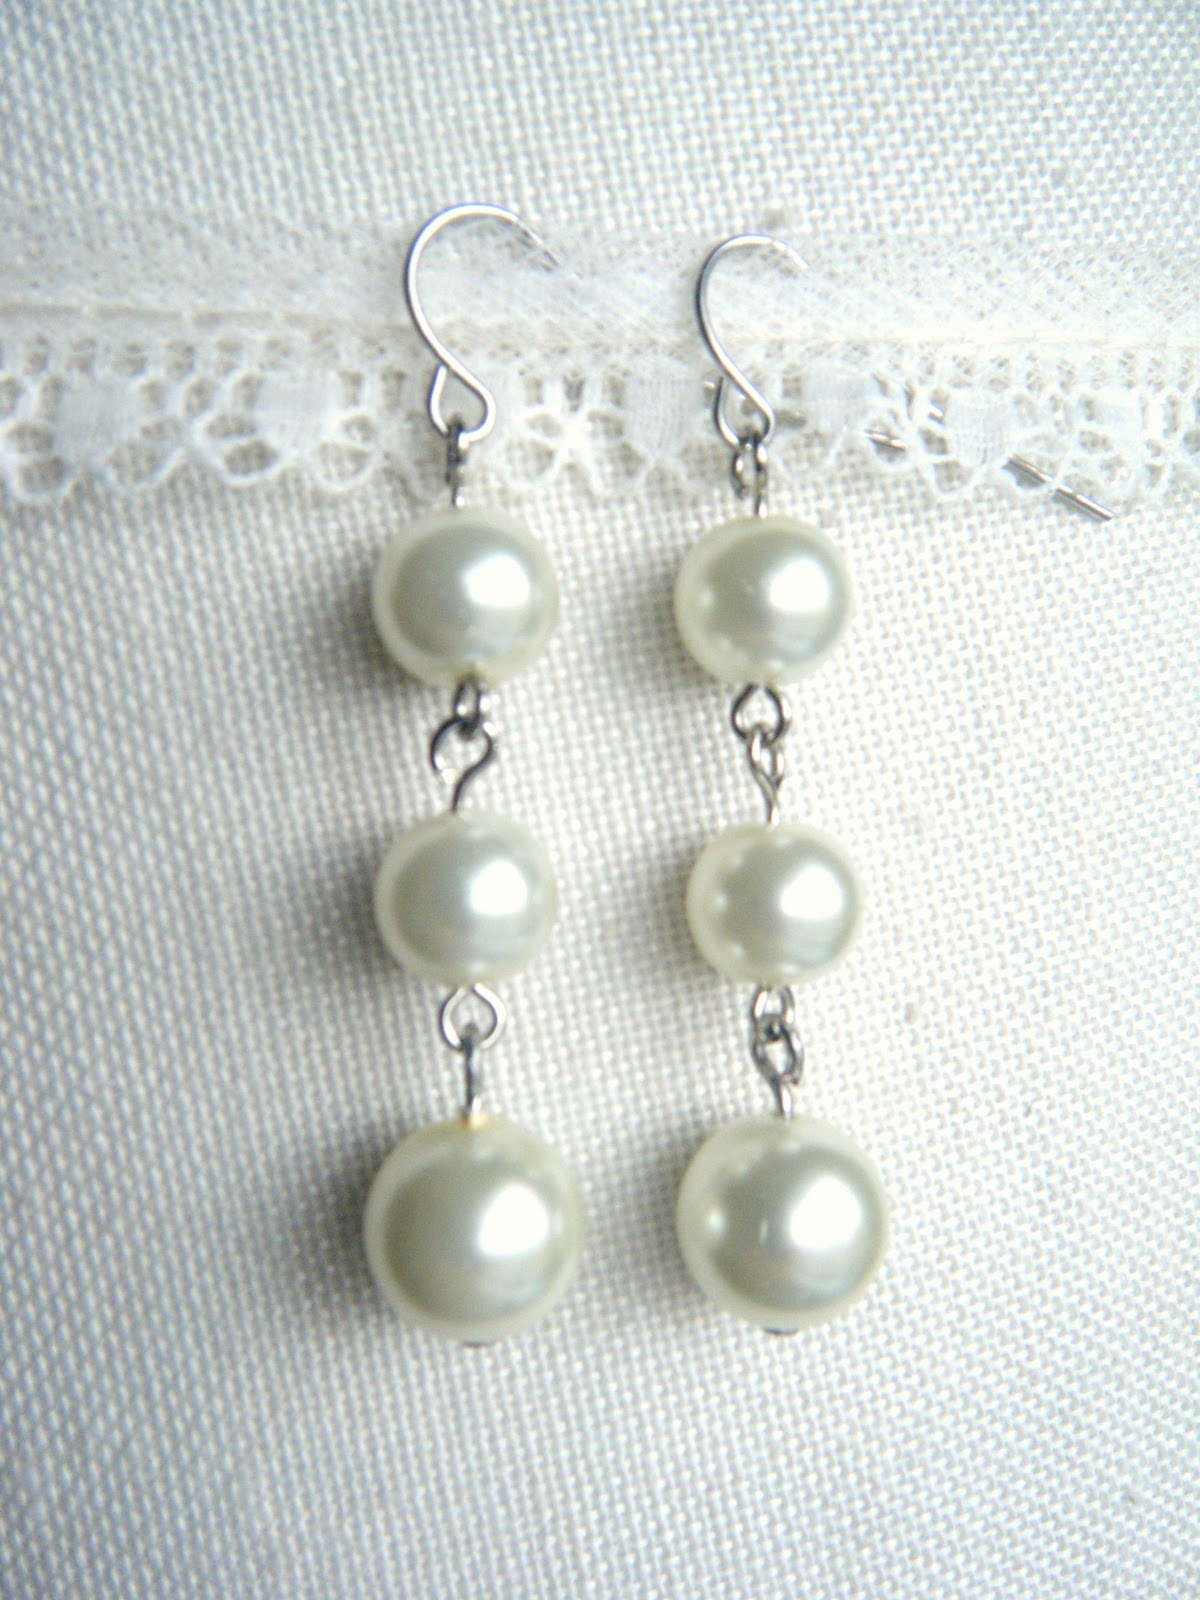 Miss Lovie: 10 Minute Pearl Earrings Tutorial